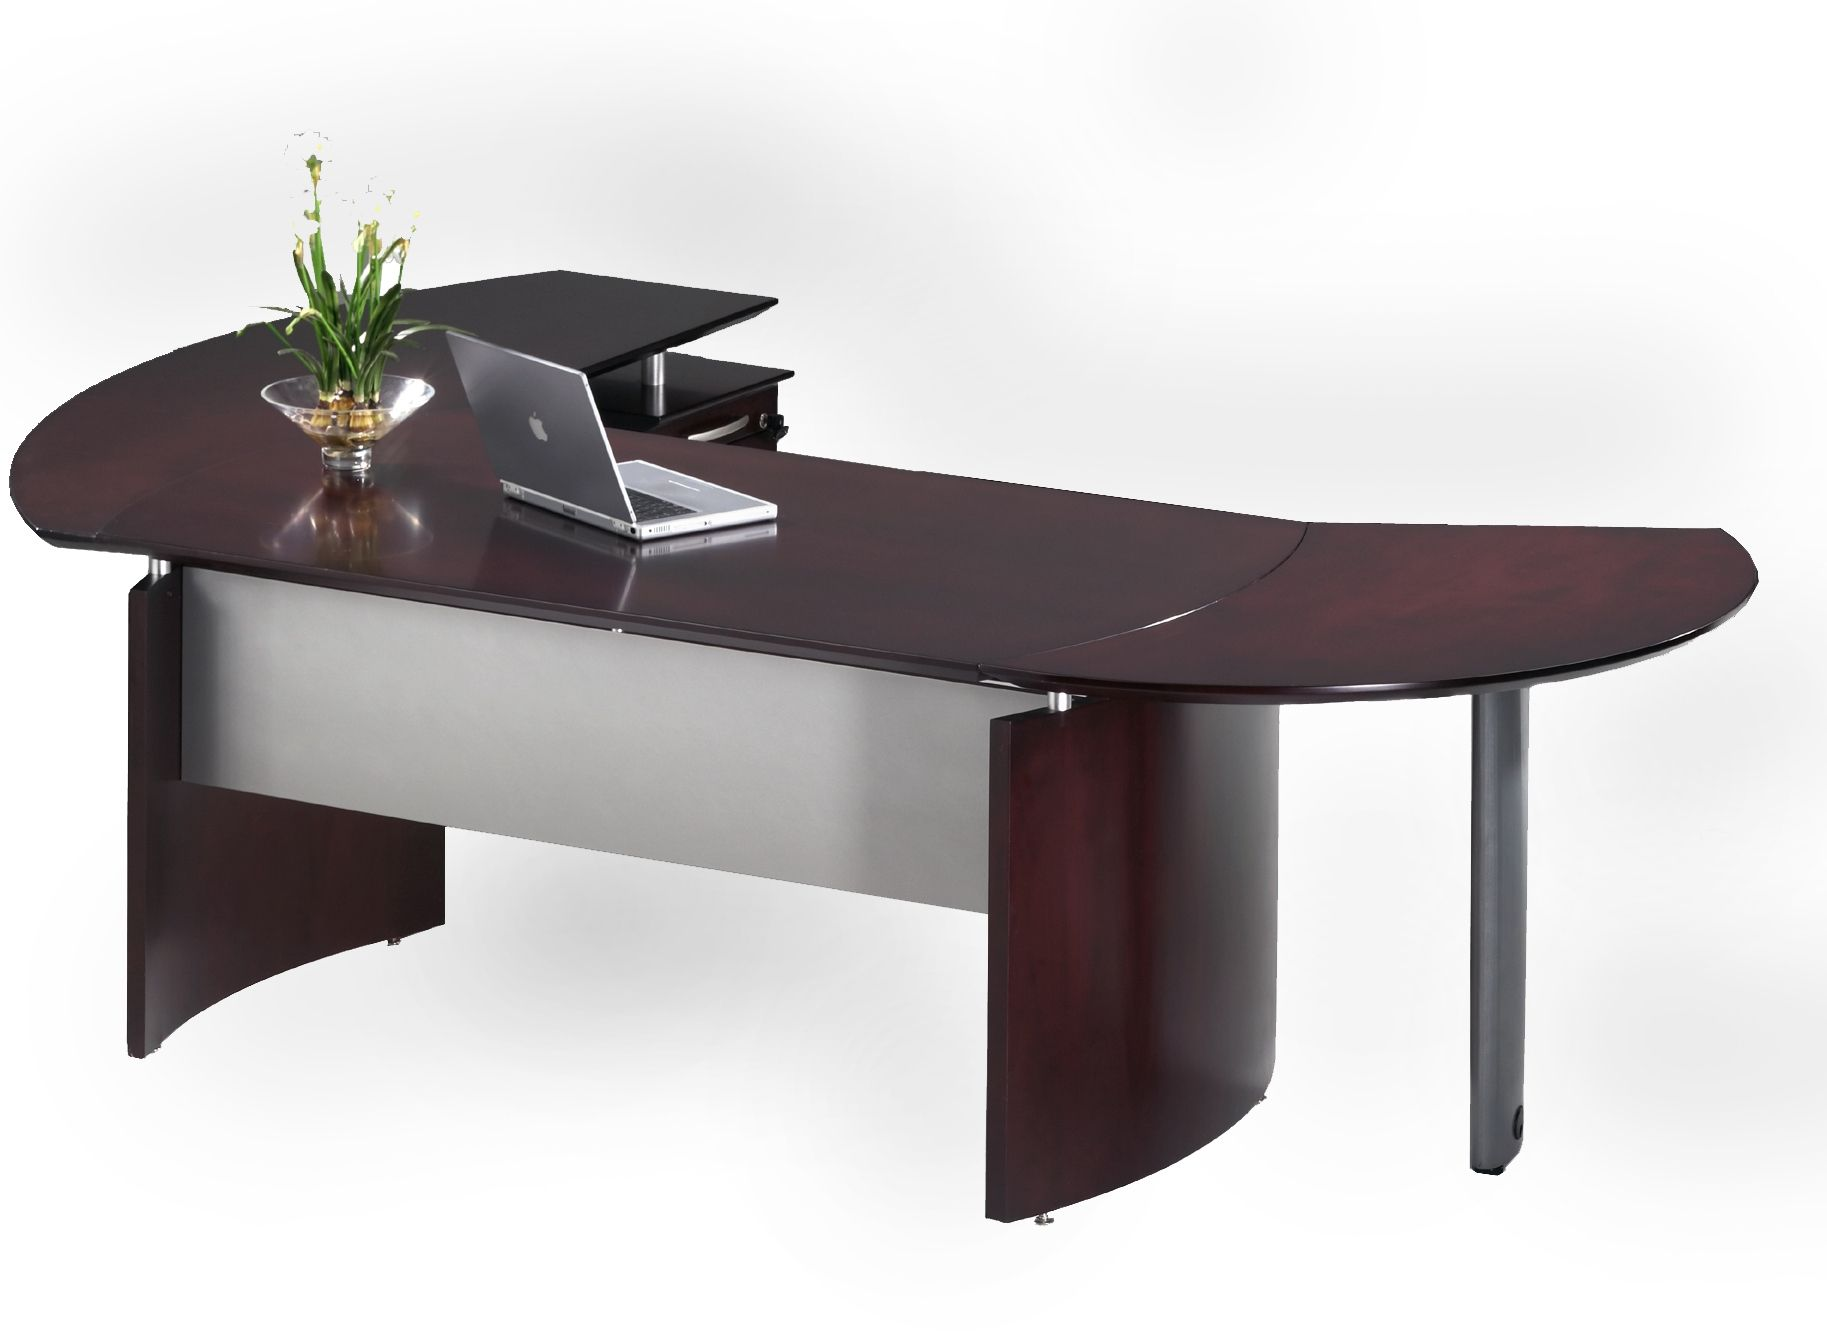 Curved office desk office decorations amazing plywood for Table design for office